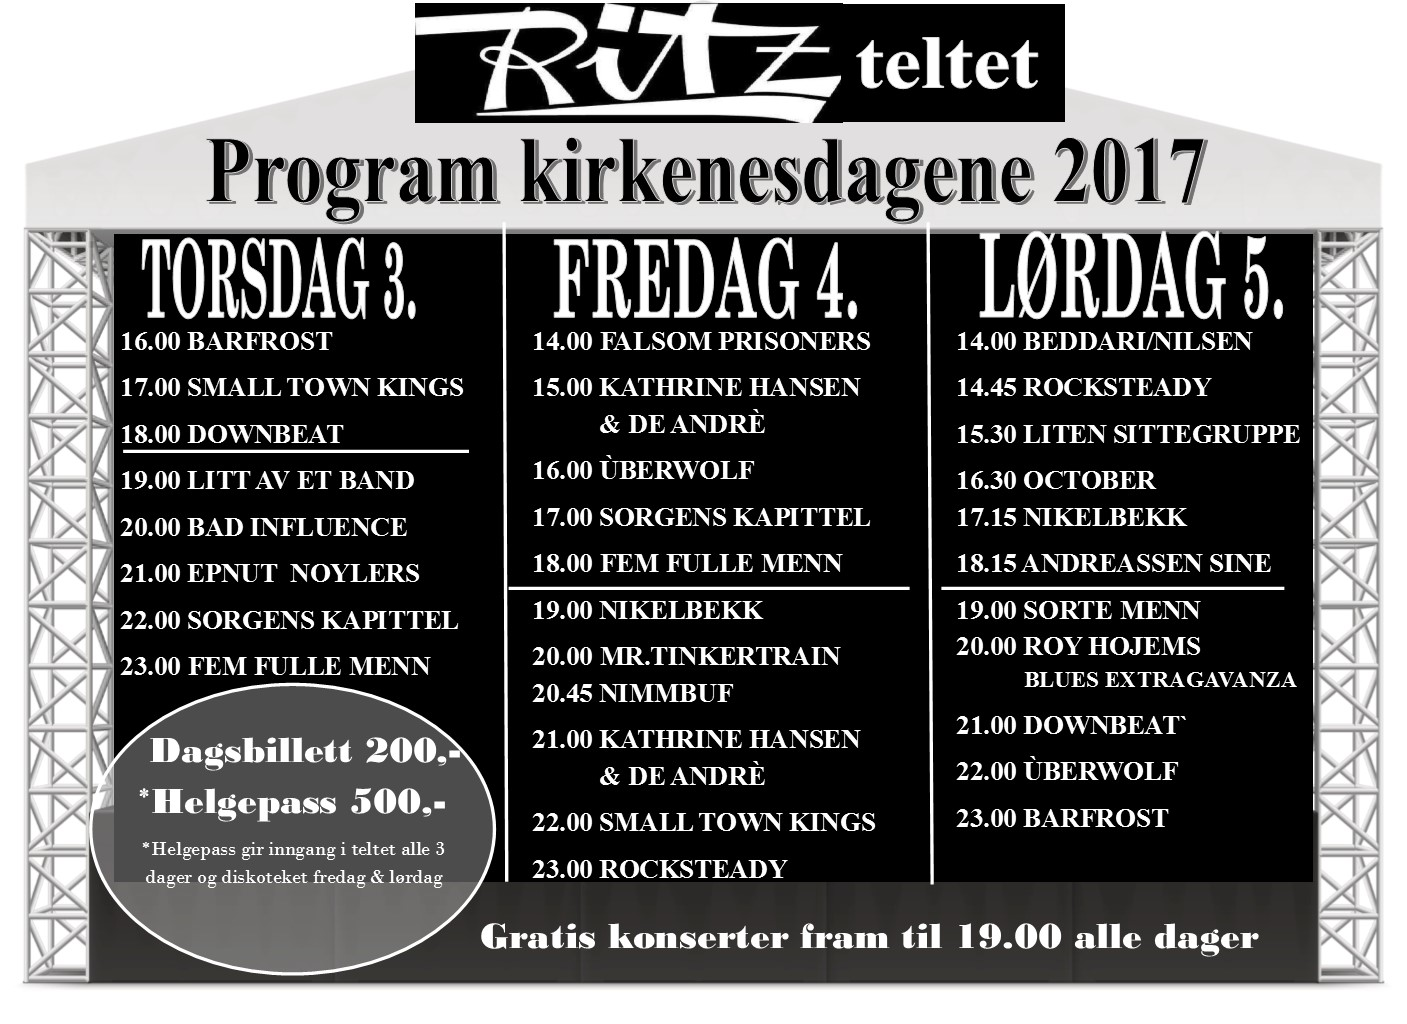 Ritzteltet program